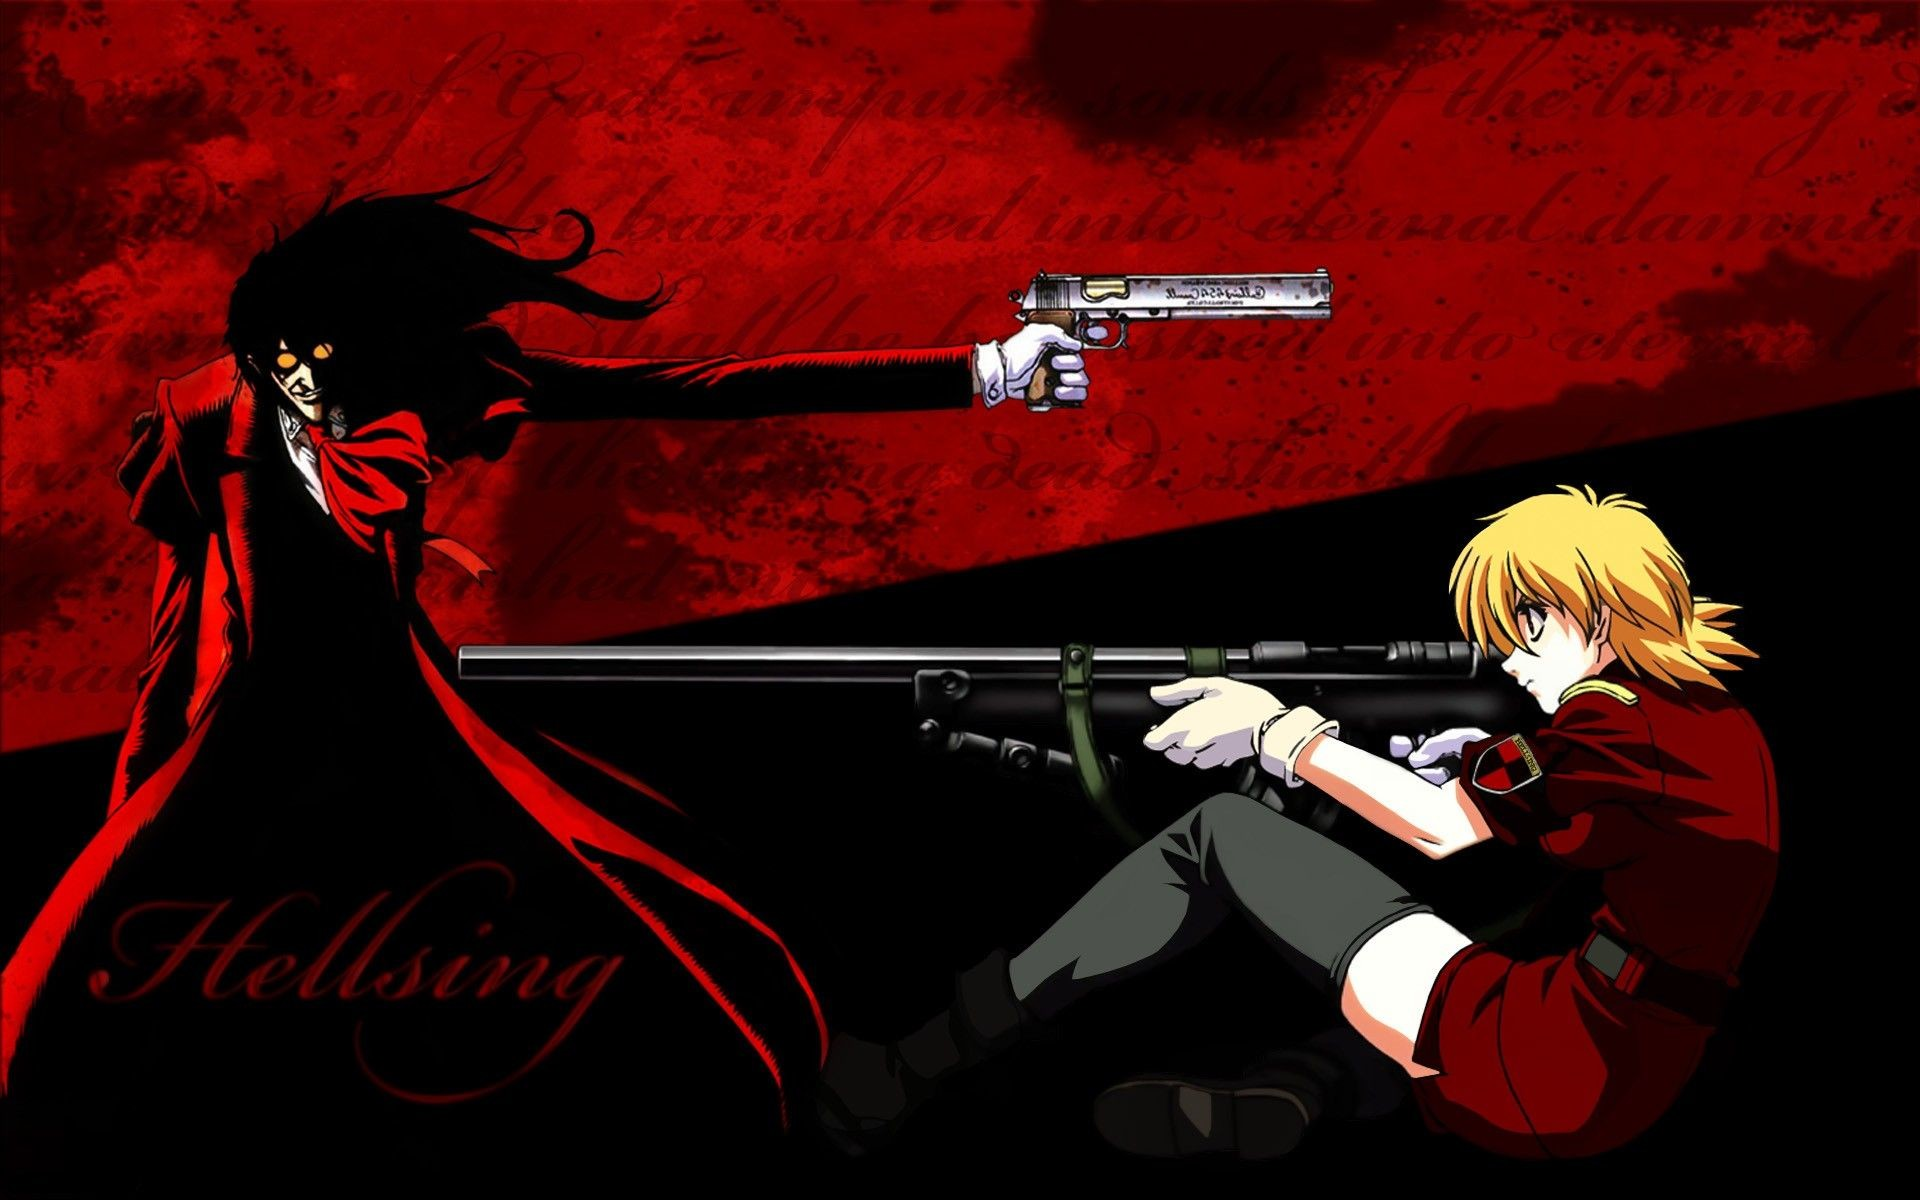 Alucard Vampires Dracula Hellsing Ultimate Integra Fairbrook Wingate 1920x1080 Wallpaper Art HD 2560x1440